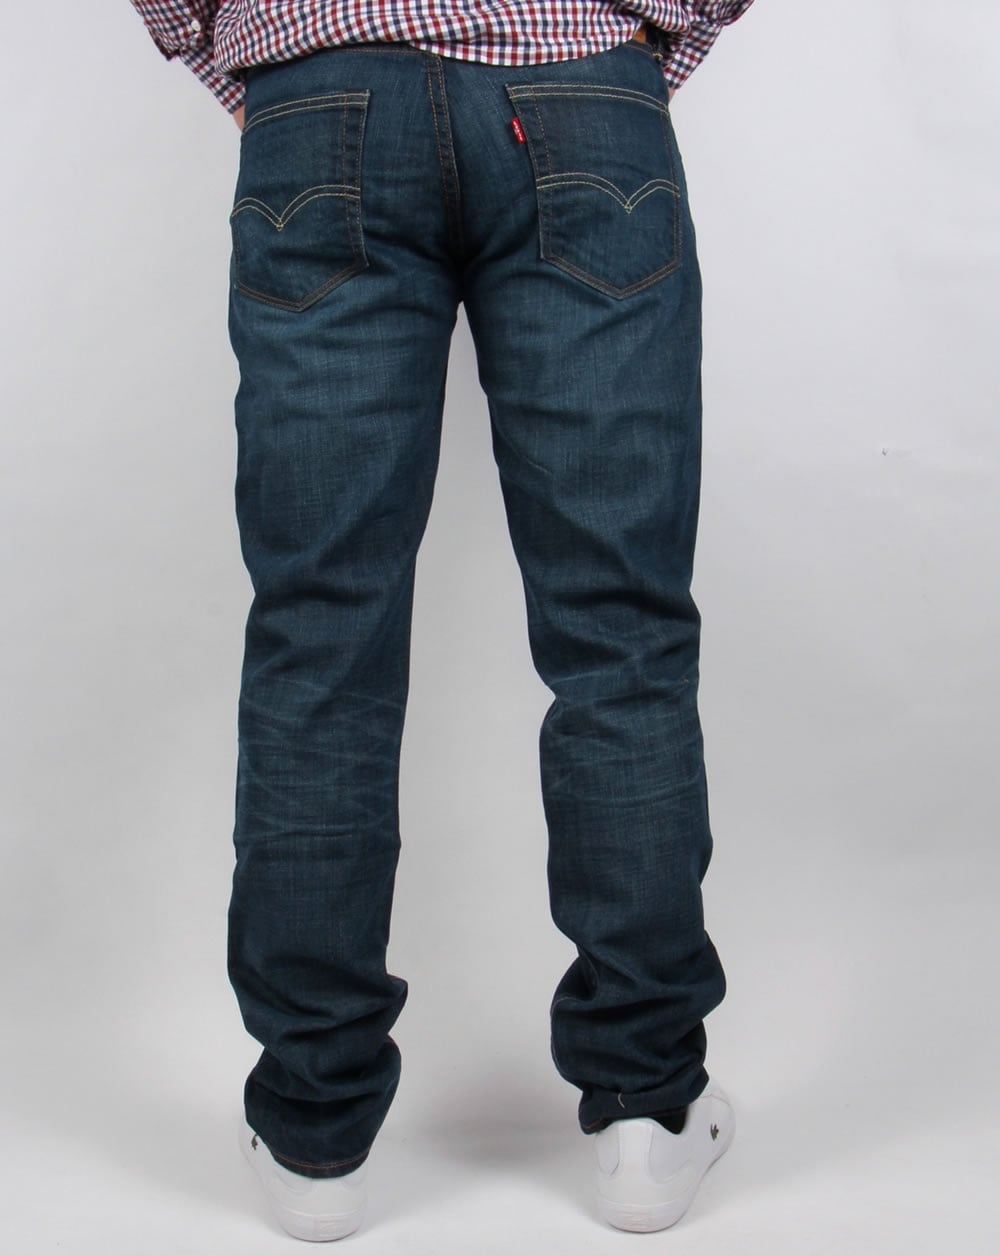 What Are The Best Mens Jeans